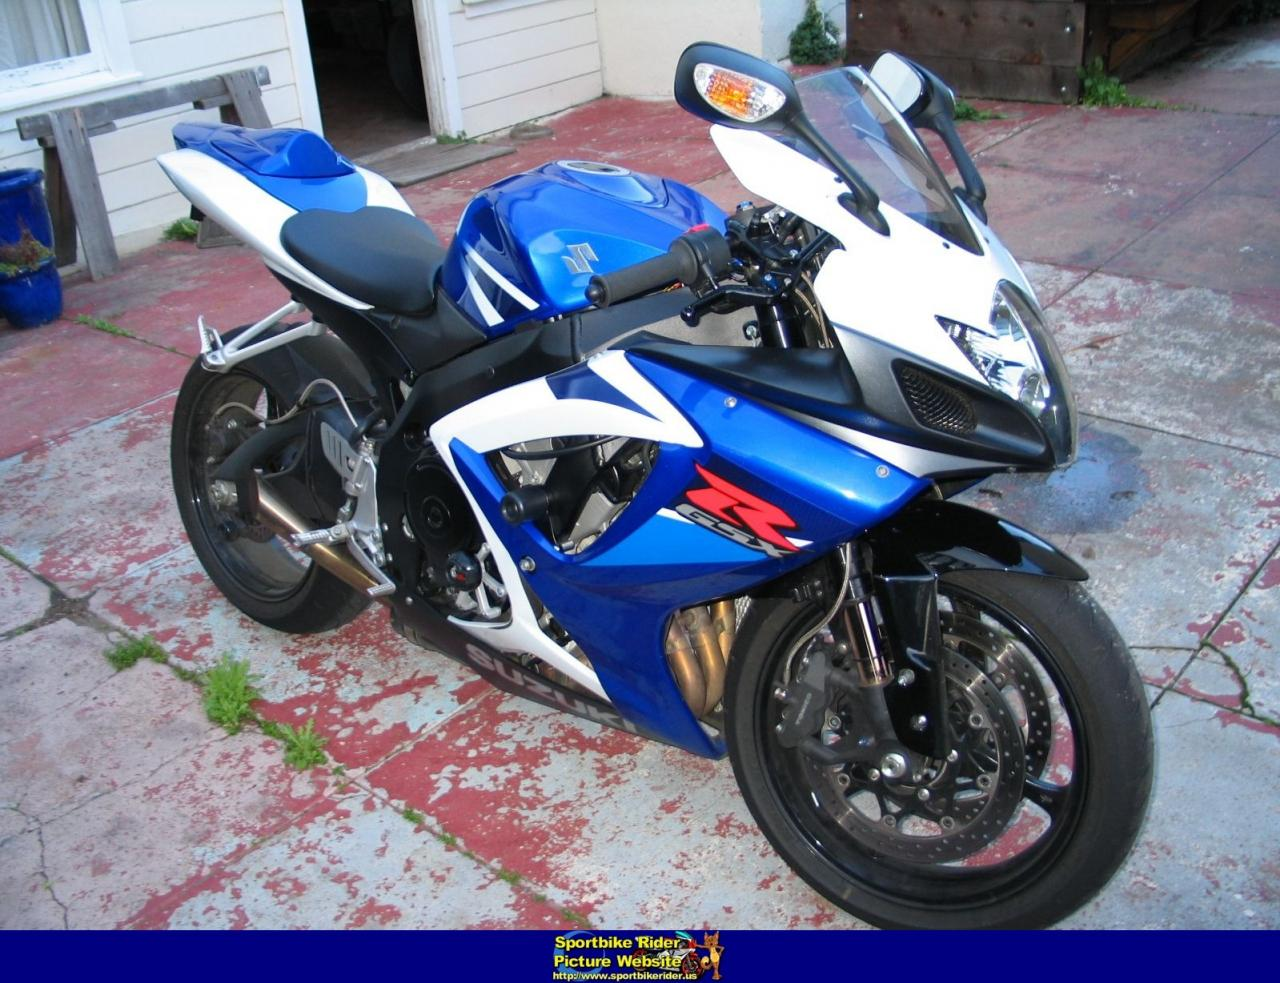 2007 suzuki gsxr 750 - photo #11